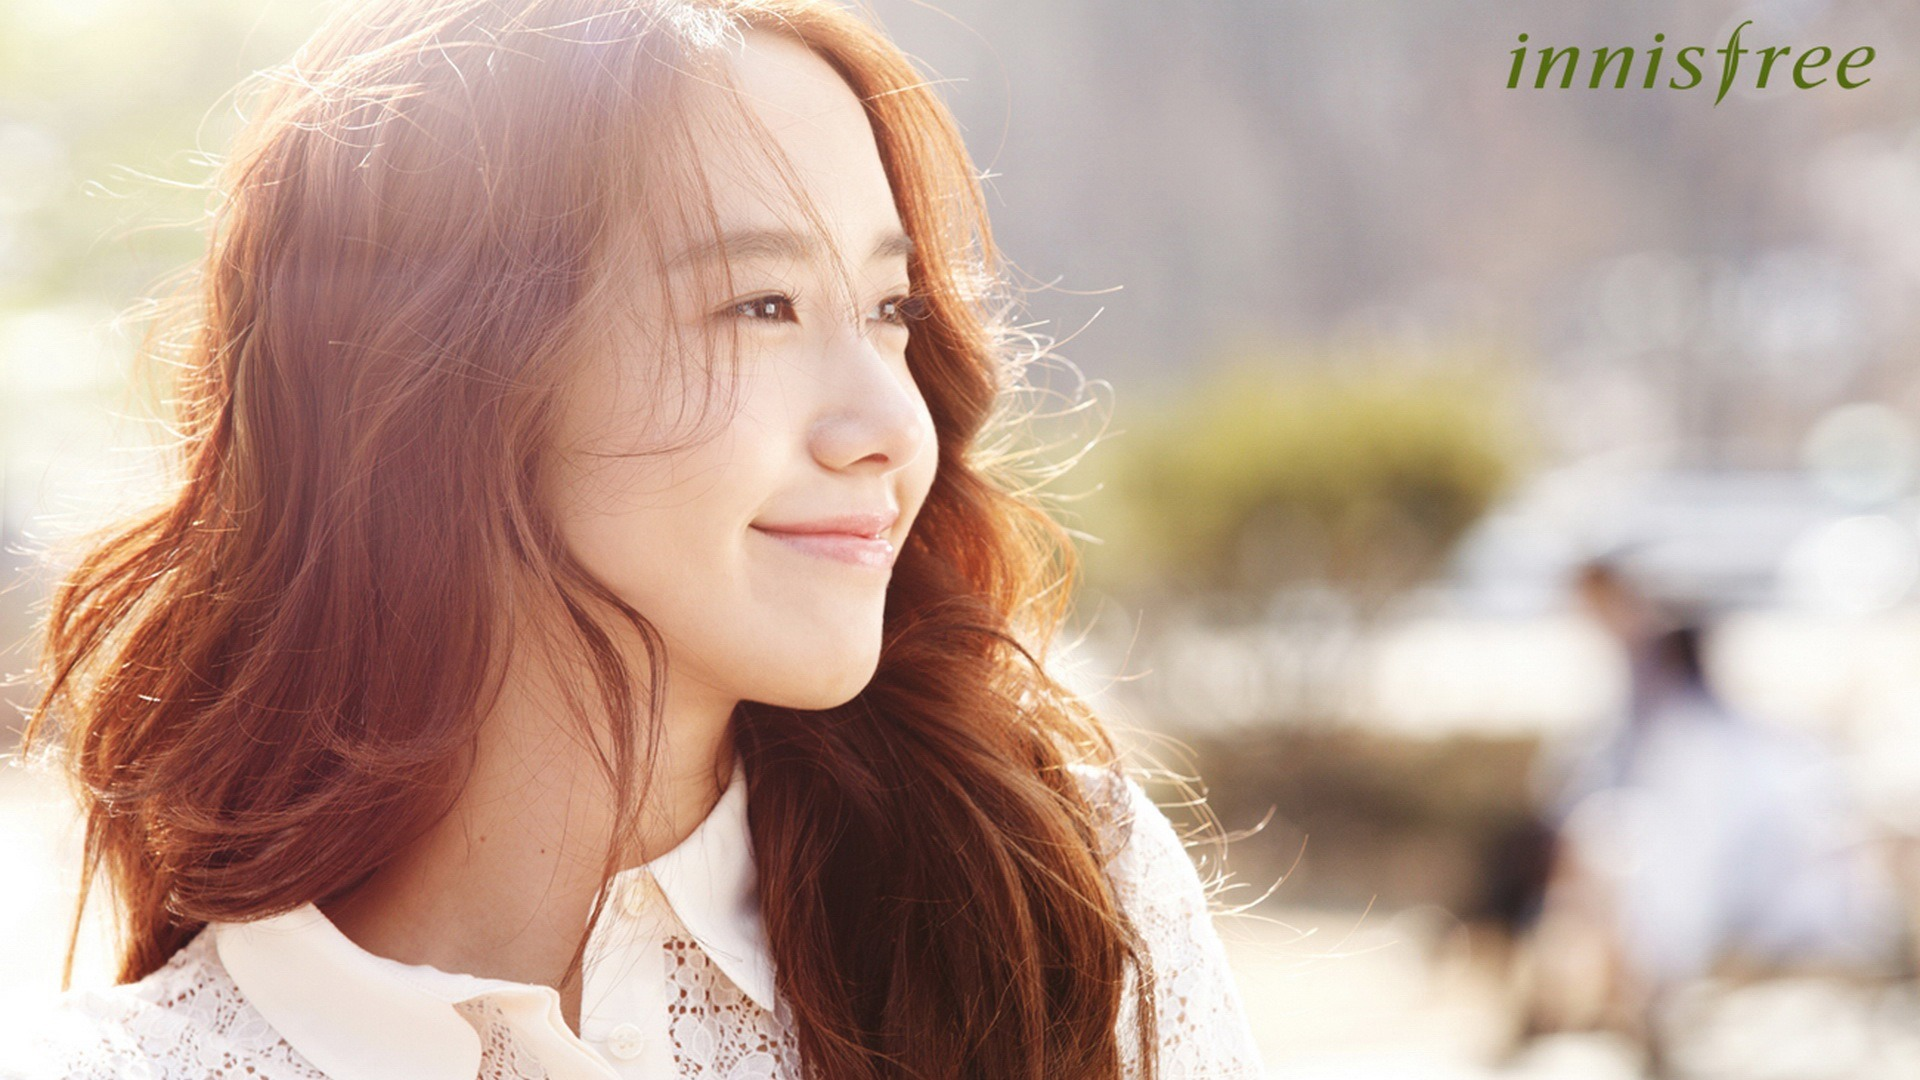 Photo Collection Yoona Wallpaper Hd 1920x1080